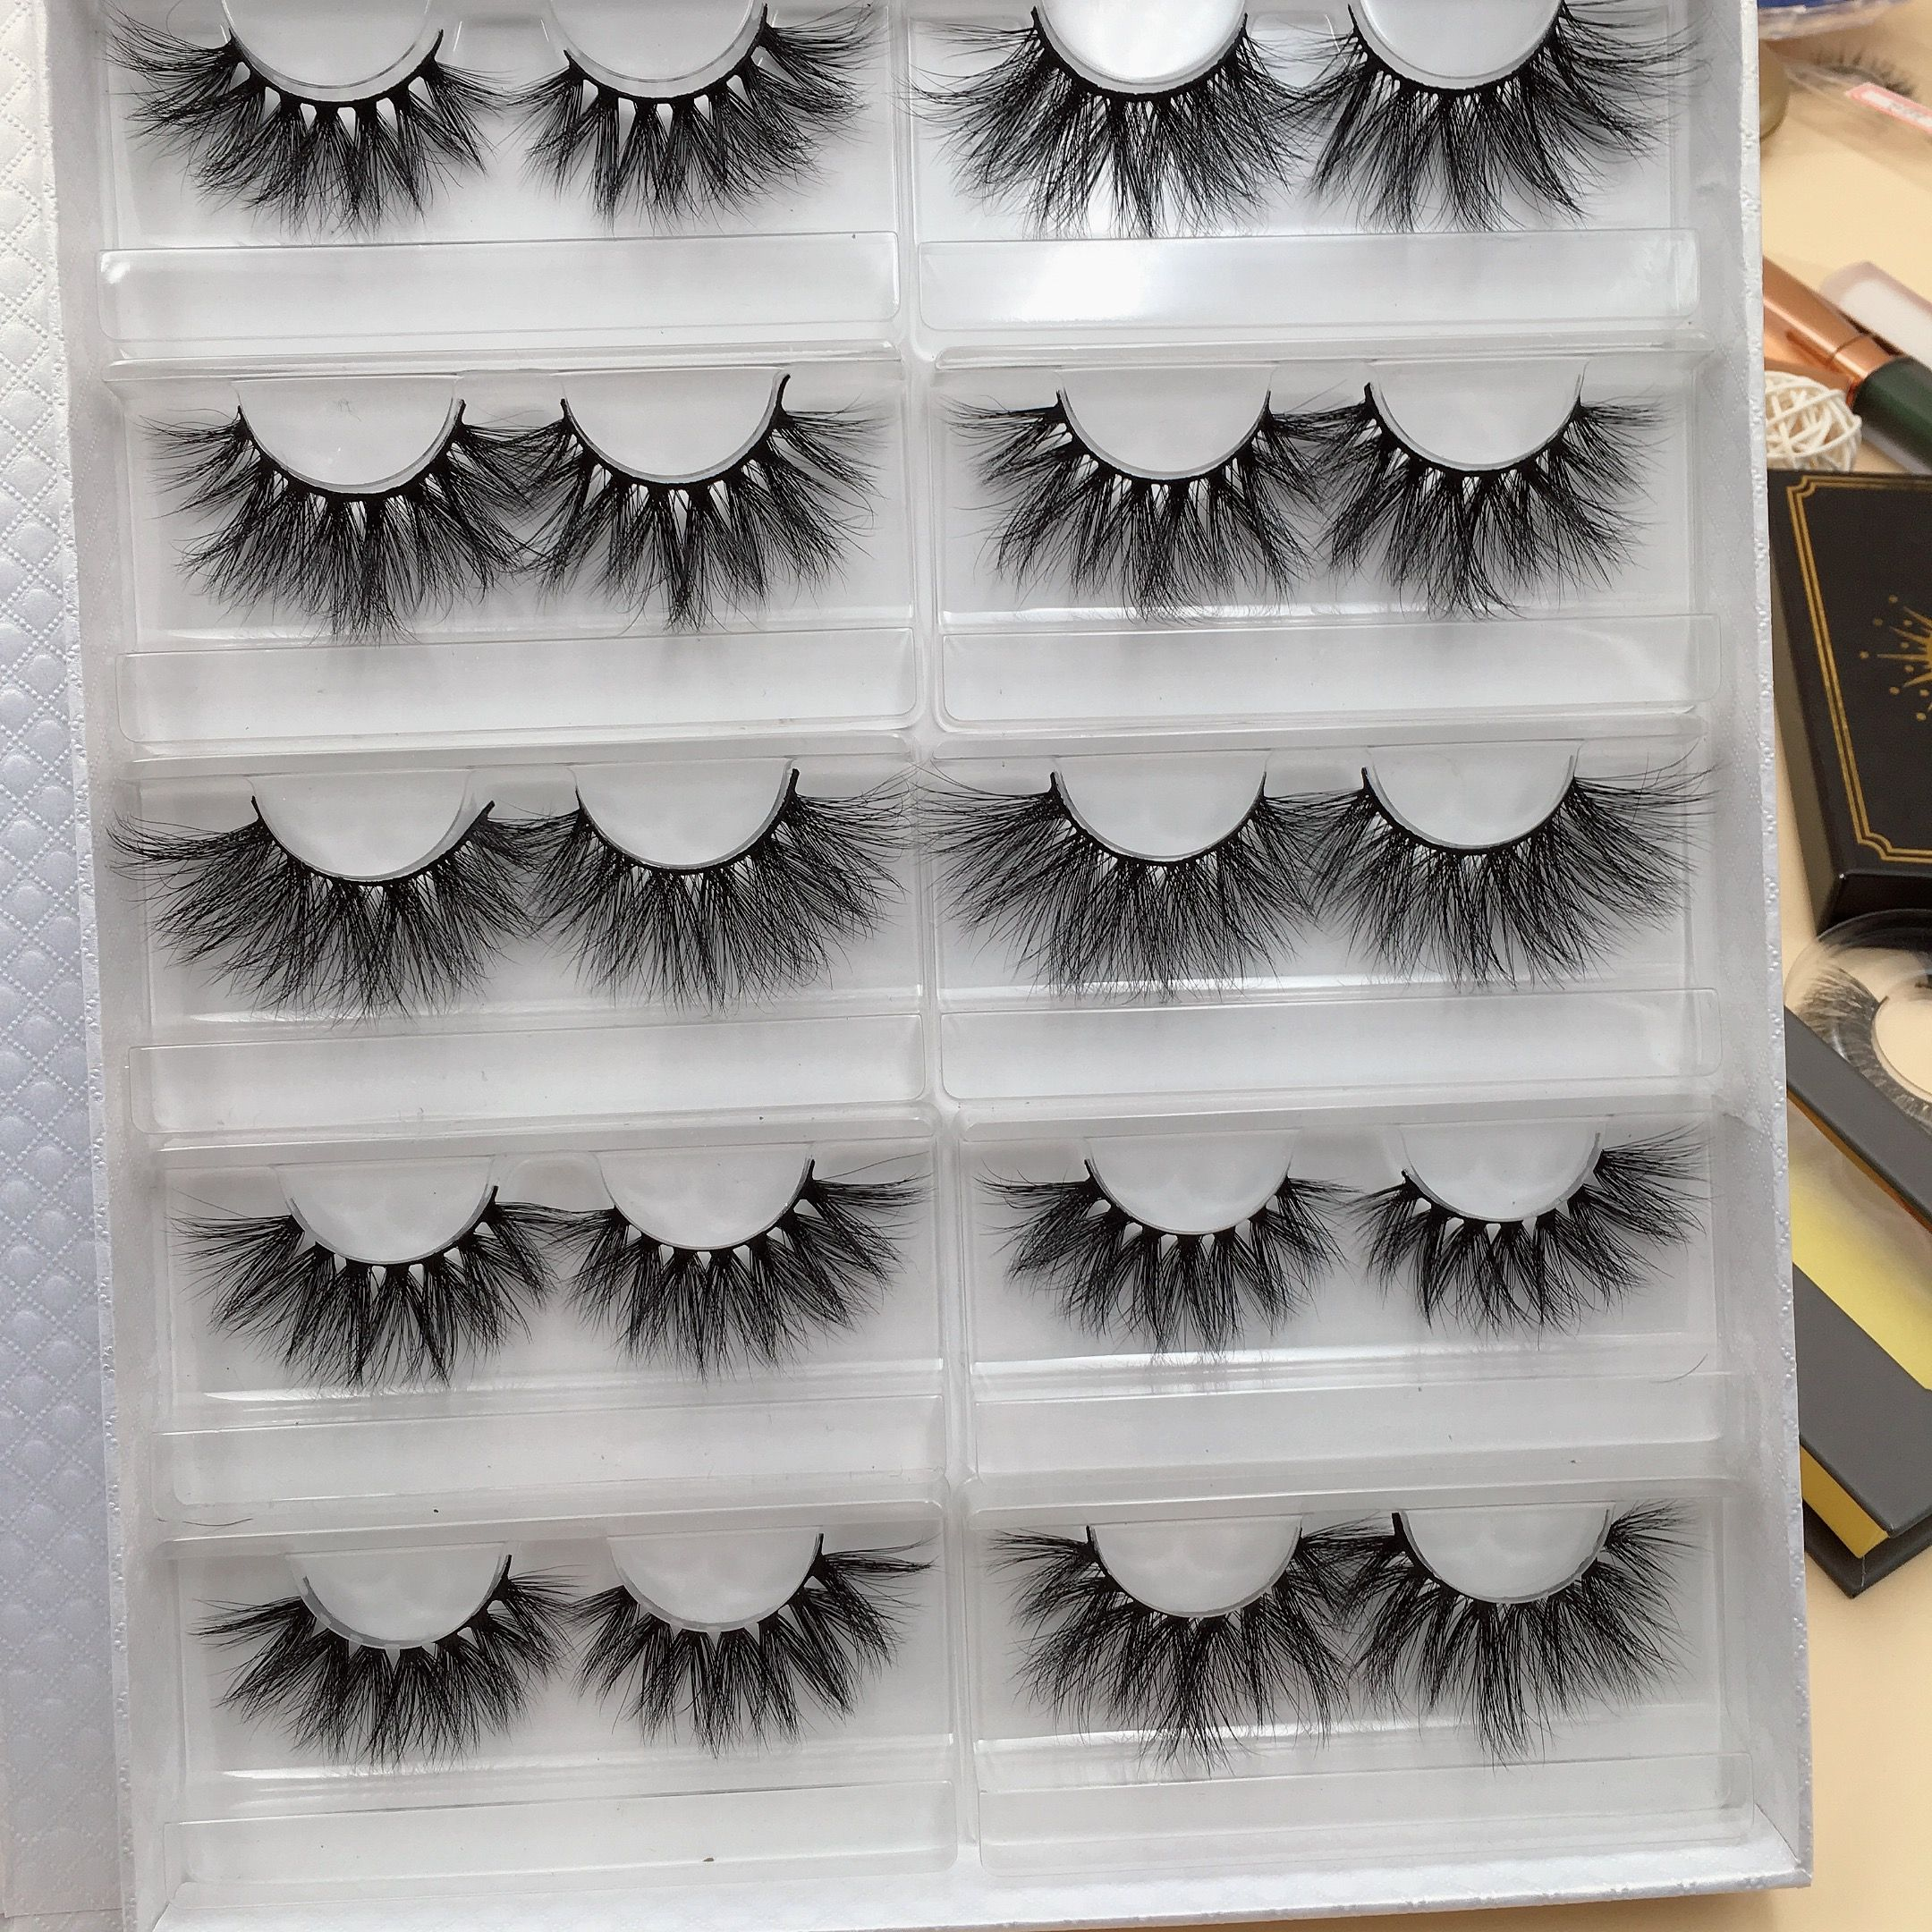 5fceaa3244f We supply different kind of 3d mink lashes, 3d silk lashes, eyelash  extensions in